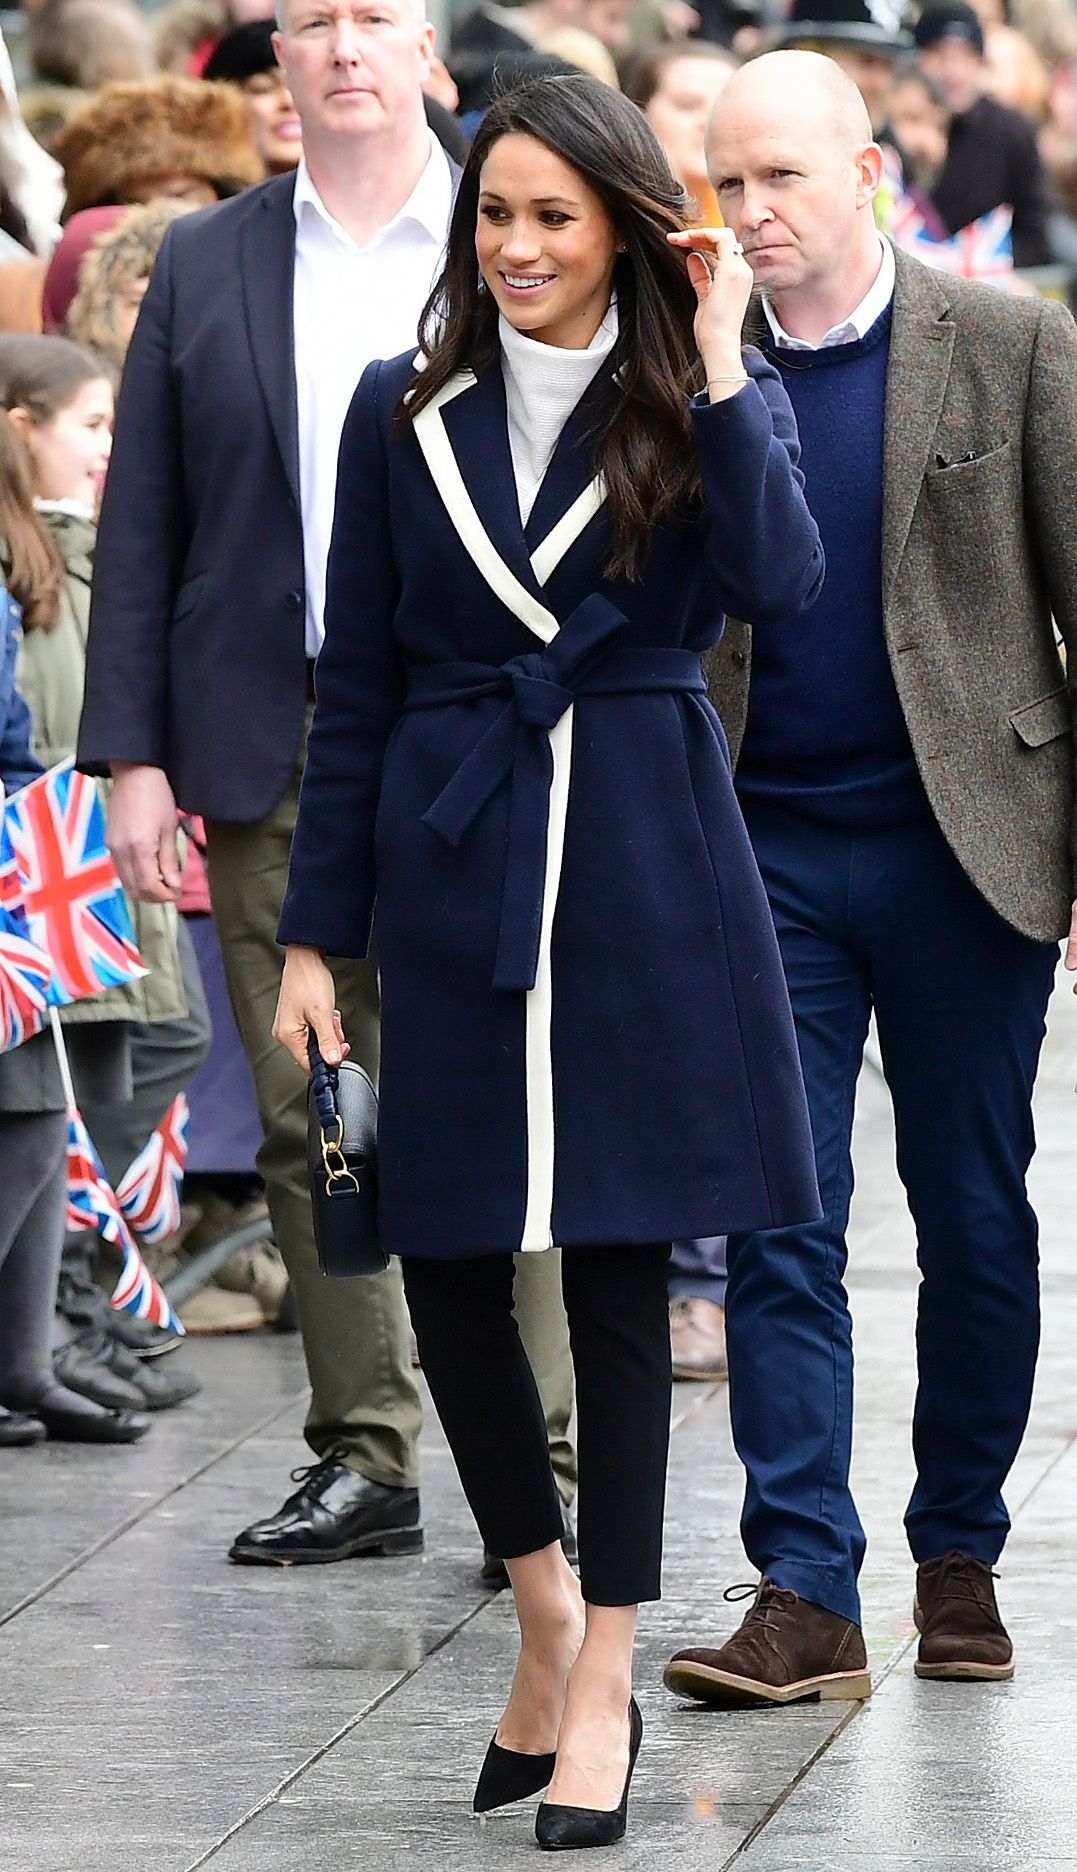 Meghan Markle S Favorite Fashion Brands How To Dress Like Meghan